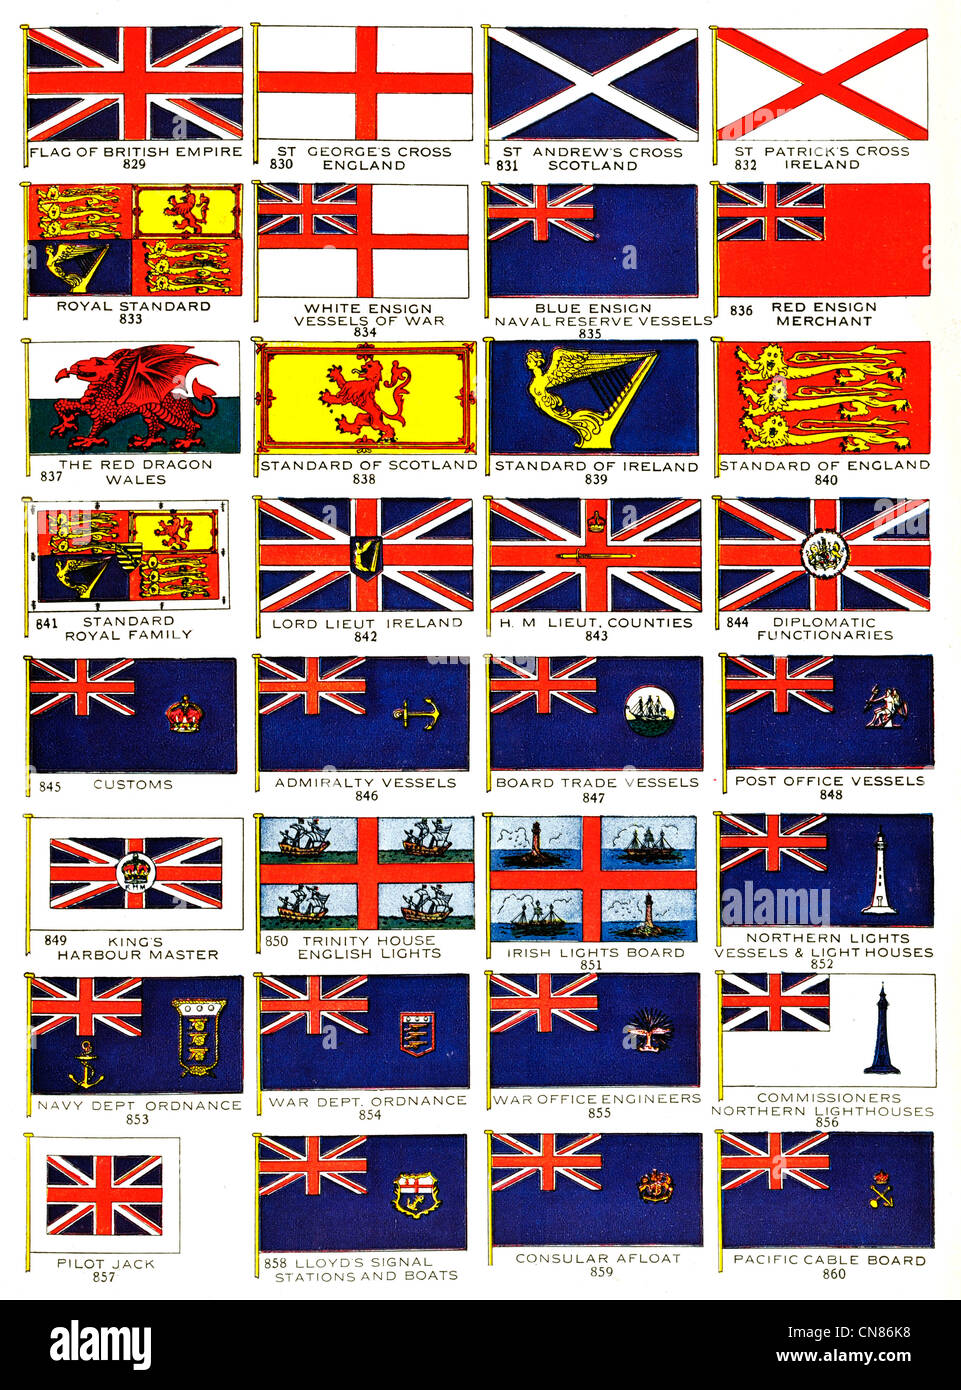 First published 1917 Flag Flags Standard St George's Cross England British Empire St Andrews Scotland St Patrick's - Stock Image